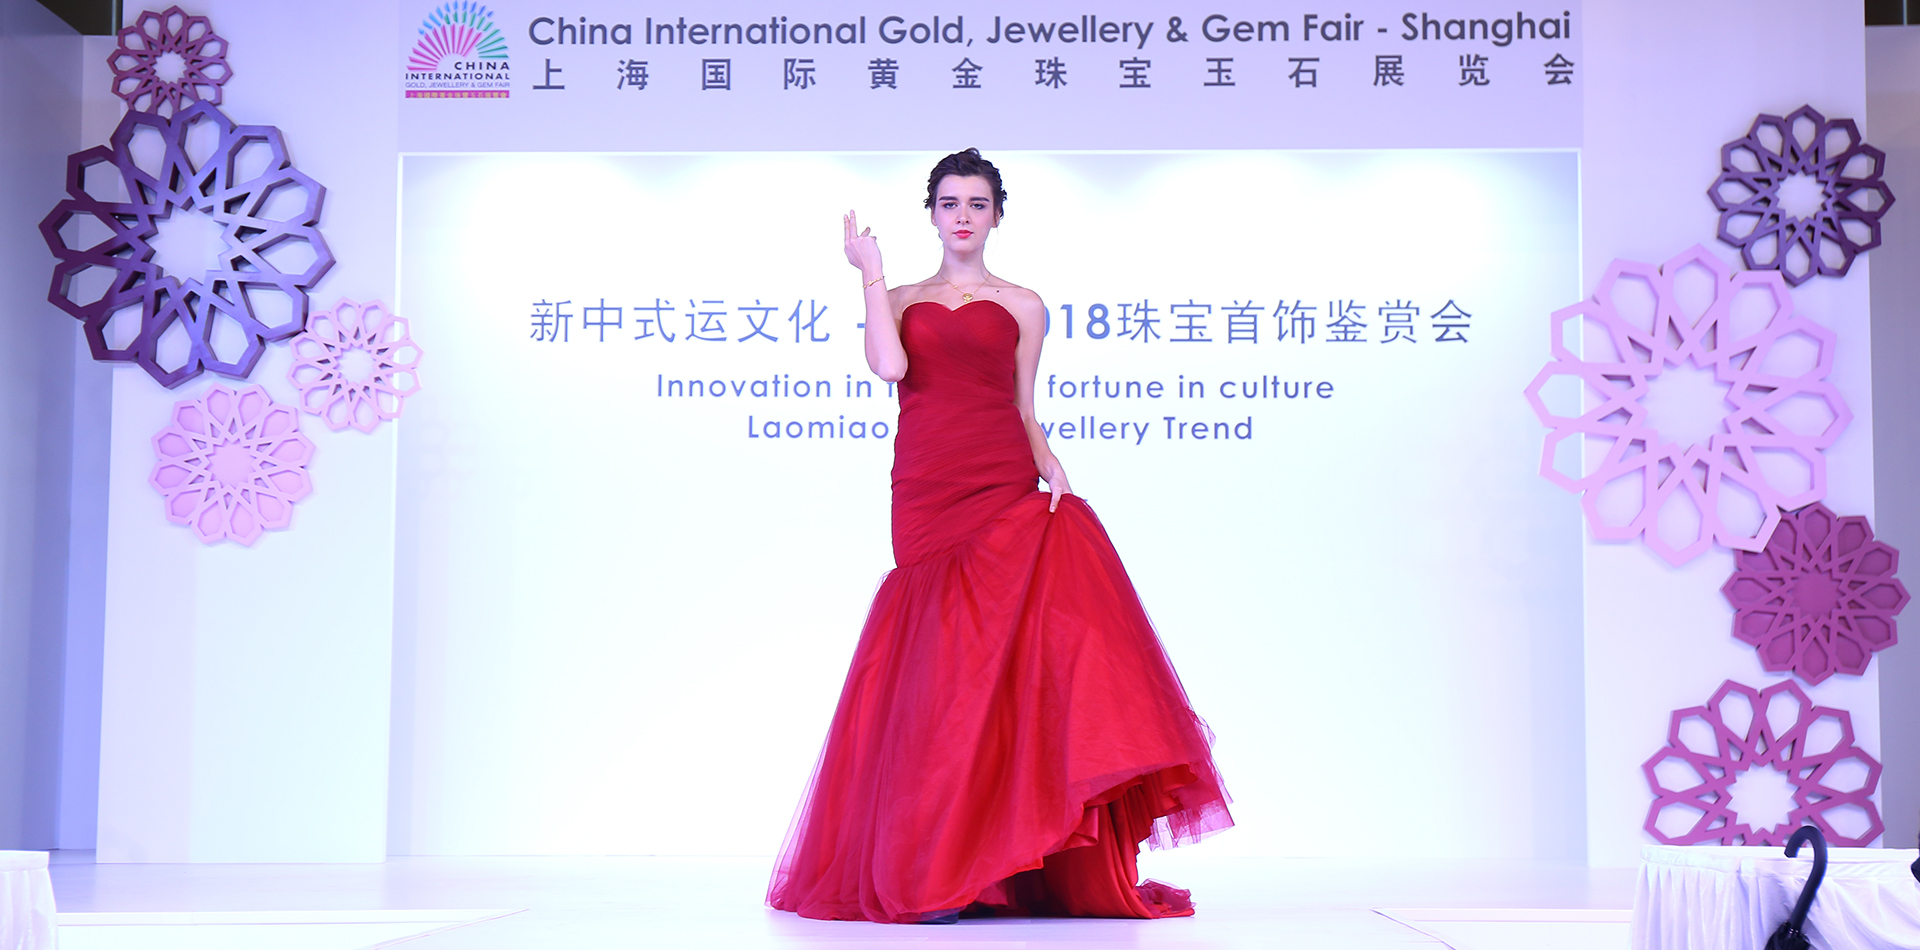 China International Gold, Jewellery & Gem Fair Shanghai - Shanghai Jewellery Fair